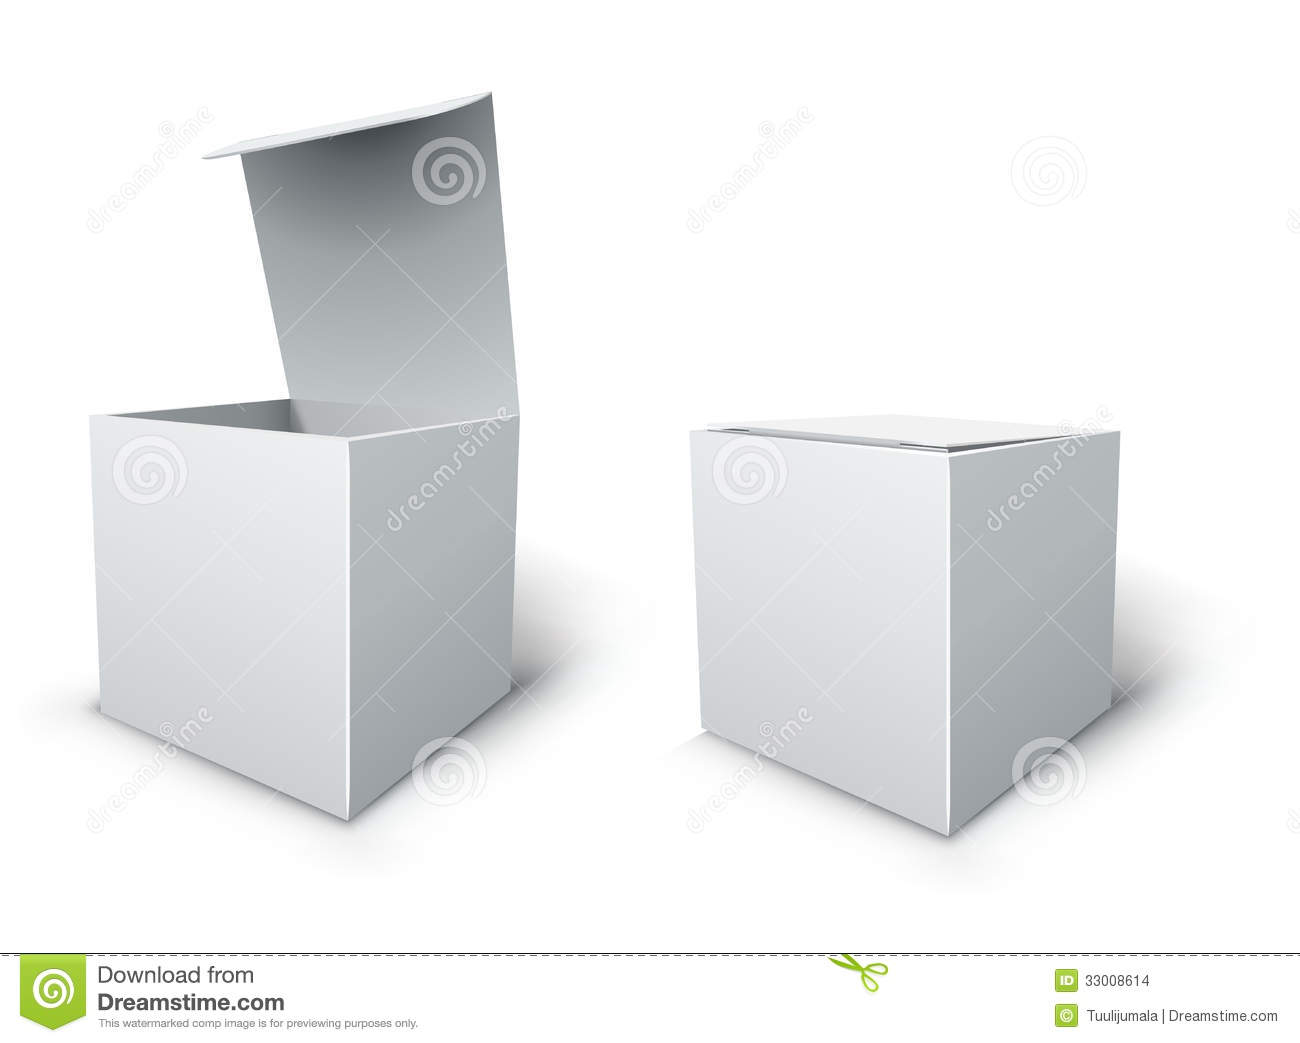 Cube Box Template Stock Vector Illustration Of Object 33008614